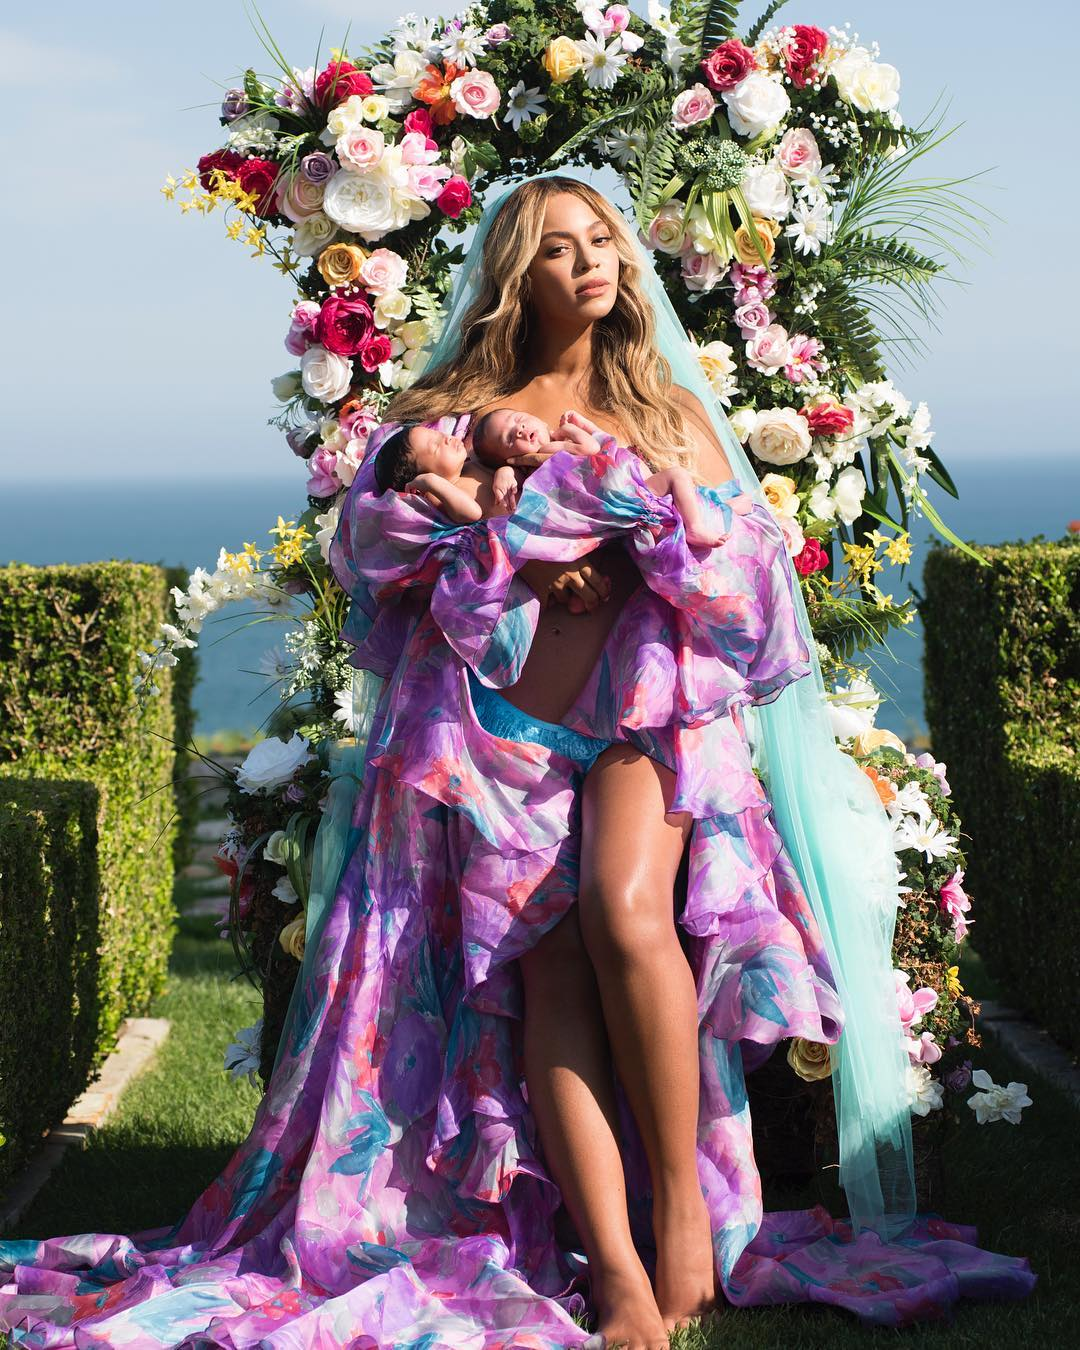 Beyonce shares first photo of twins Sir and Rumi